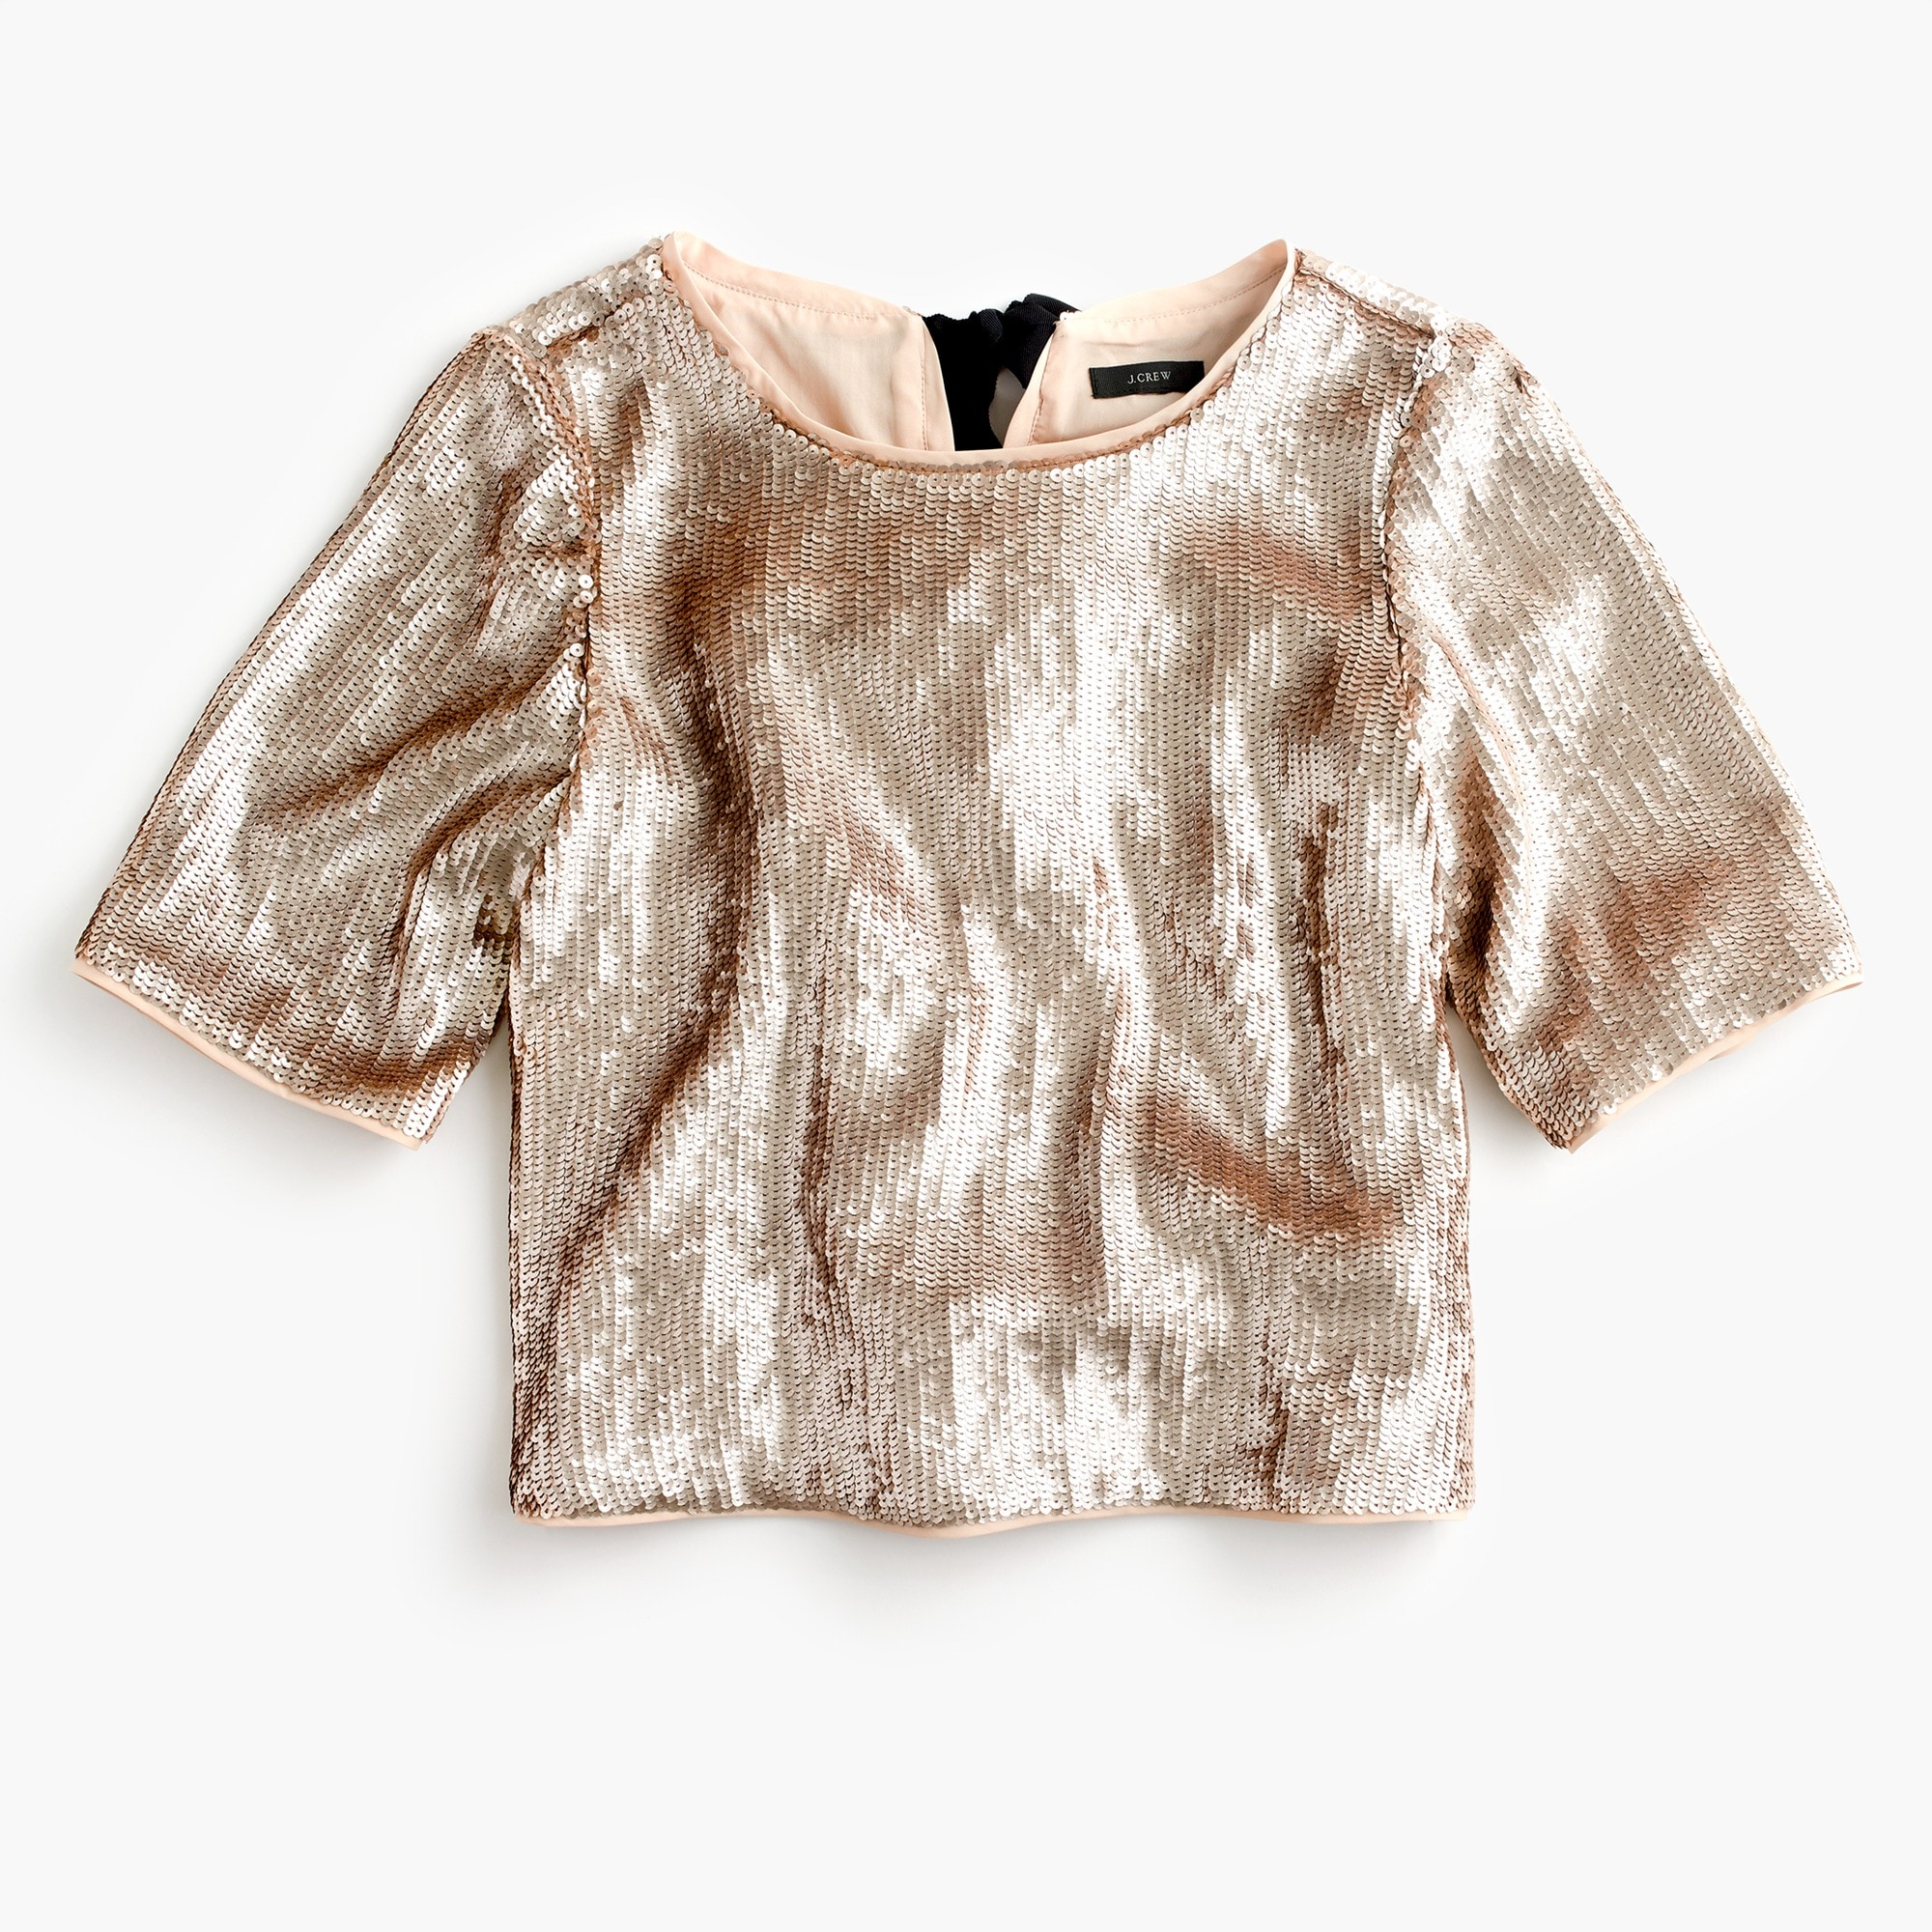 Image 2 for Cropped sequin top in rose gold